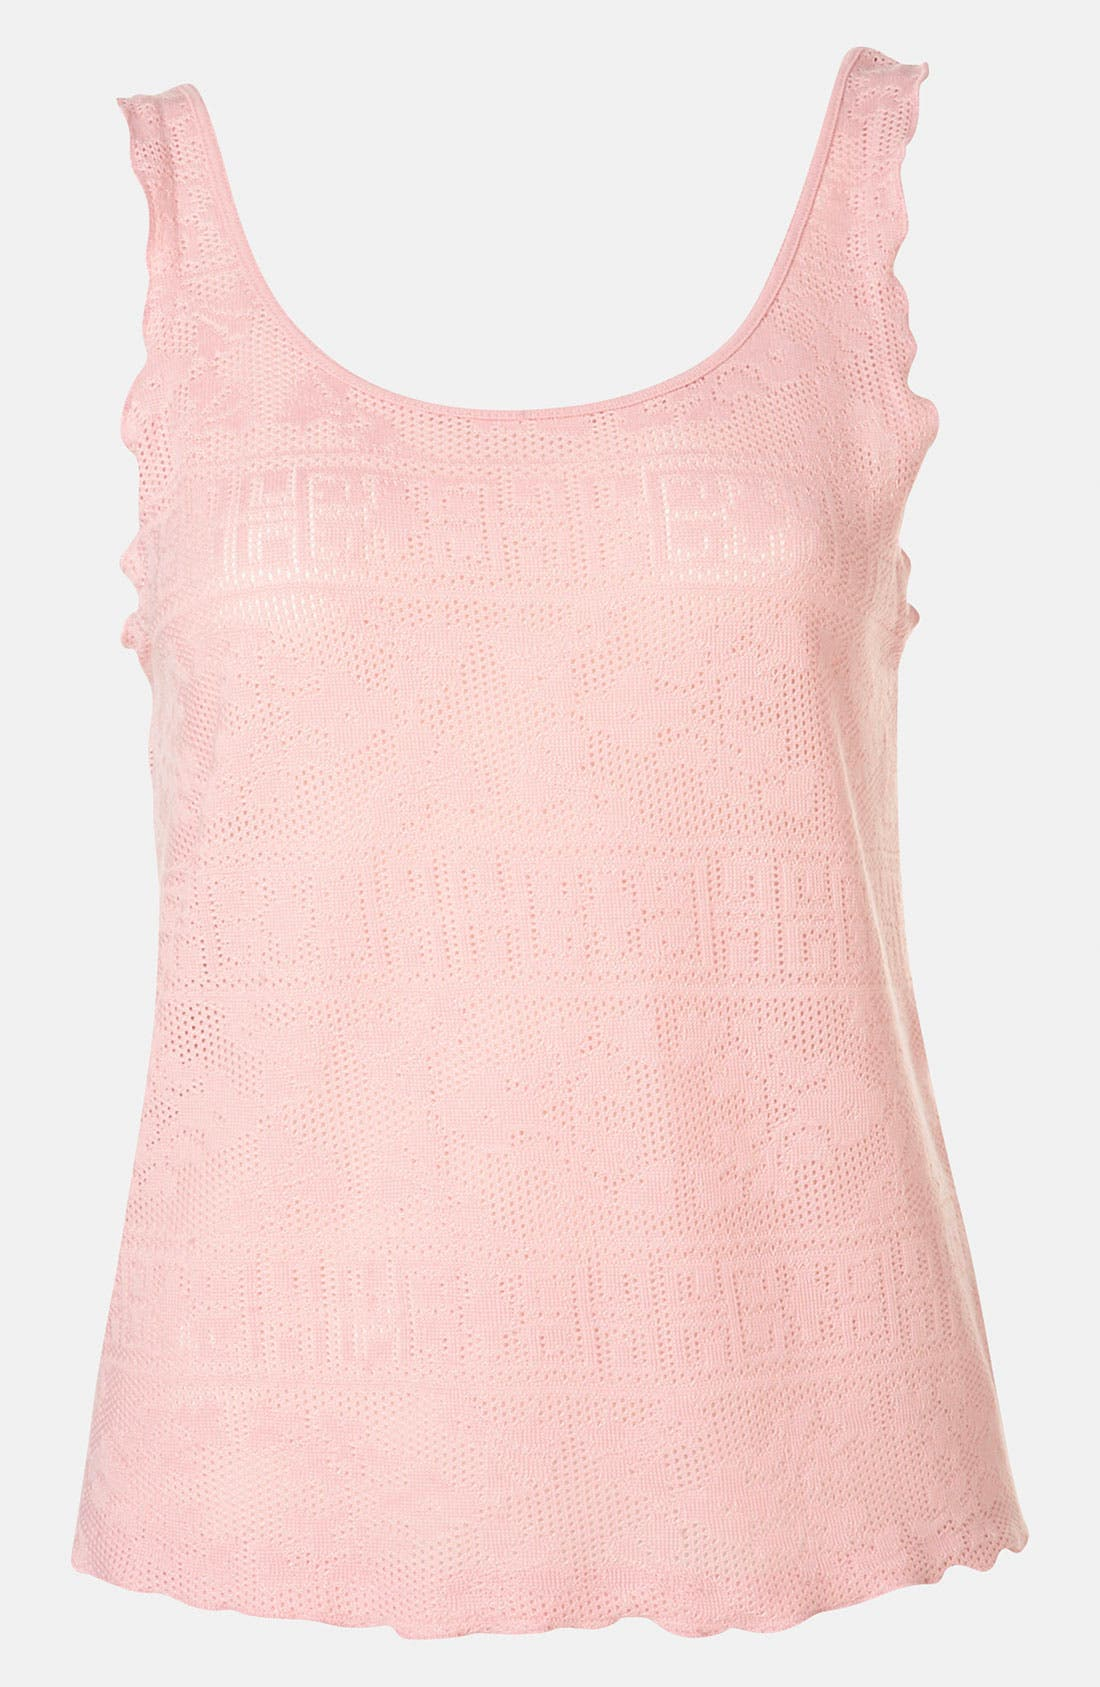 Main Image - Topshop Doily Lace Tank